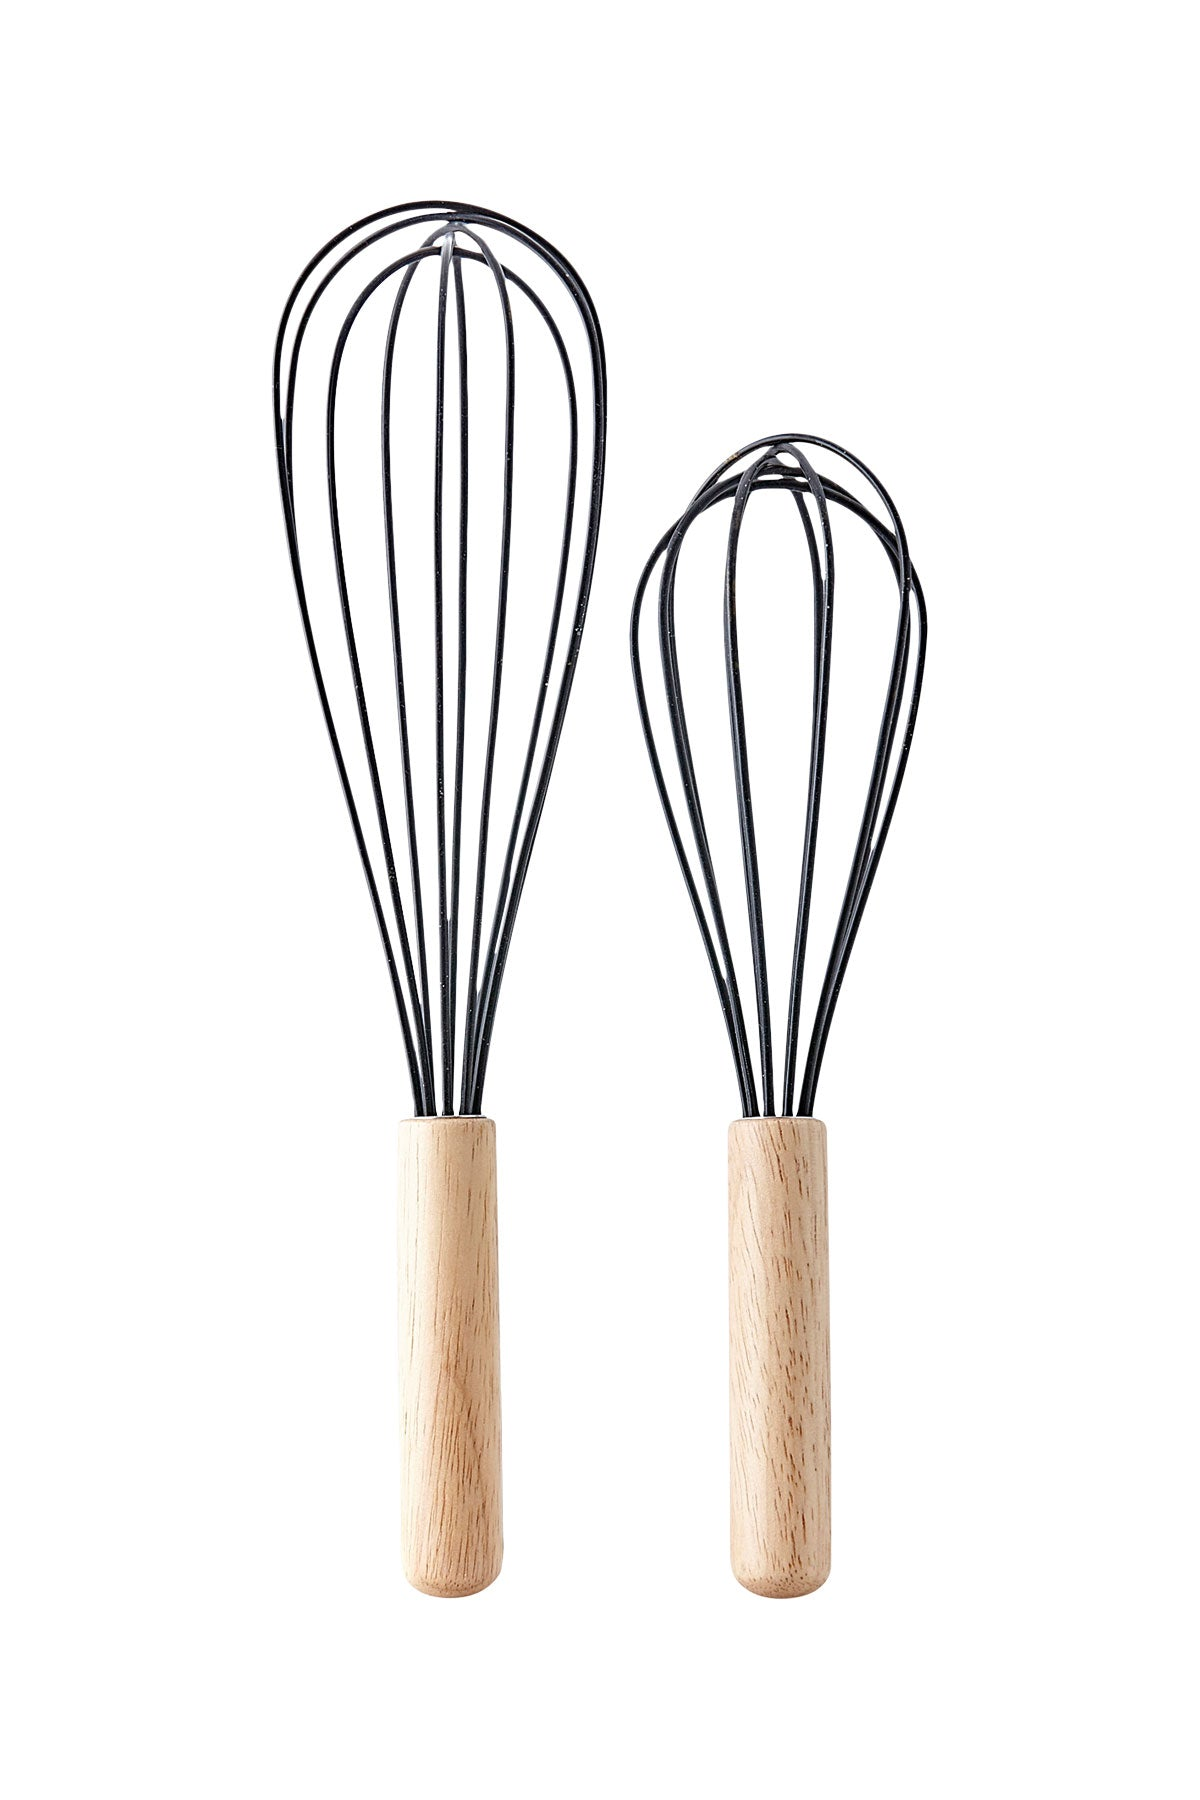 Cool Black Whisk, Utensils, House Doctor - 3LittlePicks